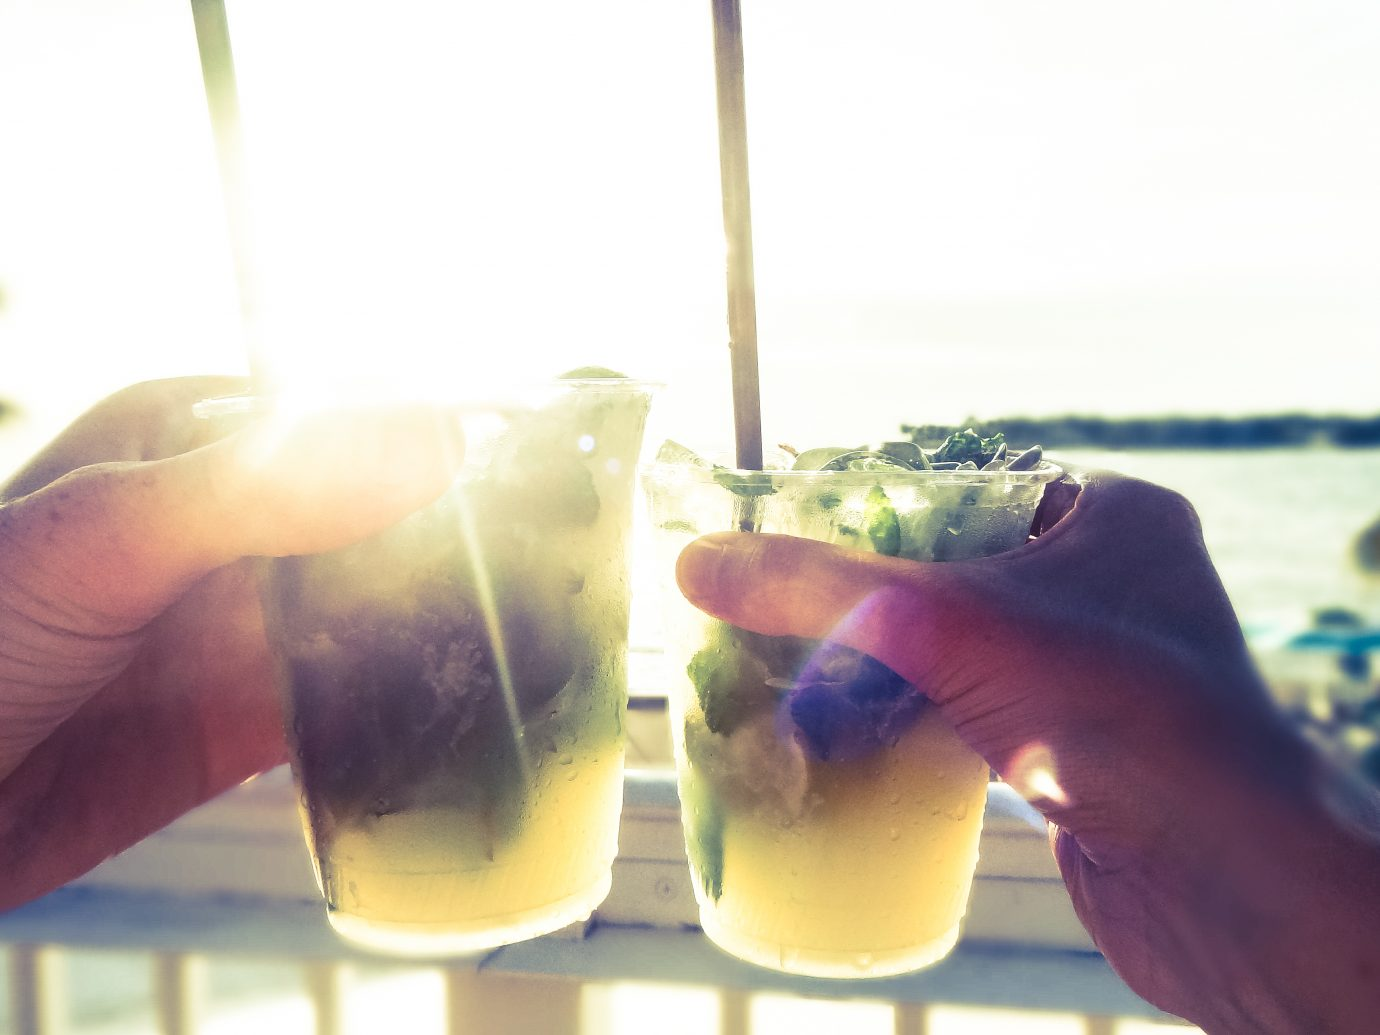 Enjoy the sunset of the Gulf of Mexico while havin' an ice-cold Caipirinha in your hand. I took this picture while drinking on a rooftop bar at the Mallory Square in Key West, Florida.